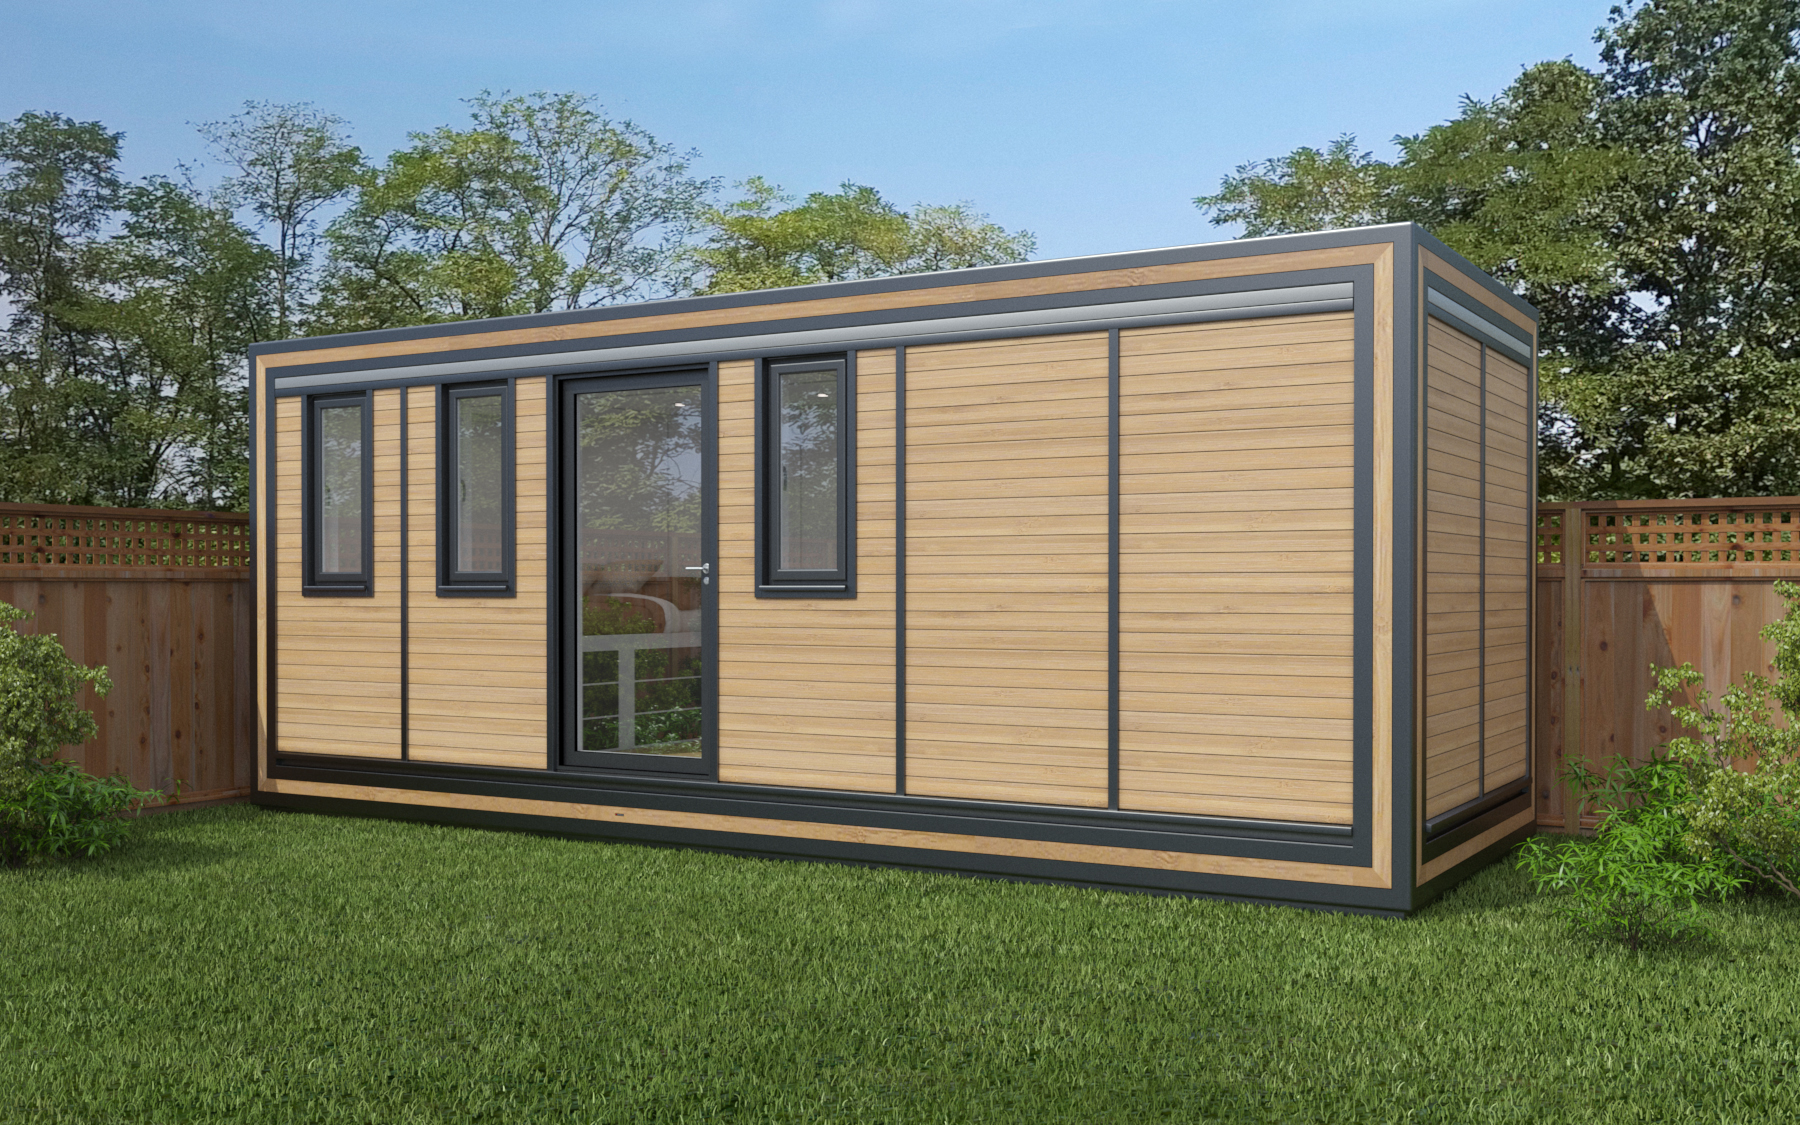 ZEDBOX 620  (6 x 2)  Internal Size: 6401 x 2117  External Size: 6871 x 2587  Bed Options: Single or Double  Kitchen Options: Micro Kitchen  Wet Room Options: Yes  Portico: No  Price:  £26,000    Optional Extras    Request Zedbox Catalogue